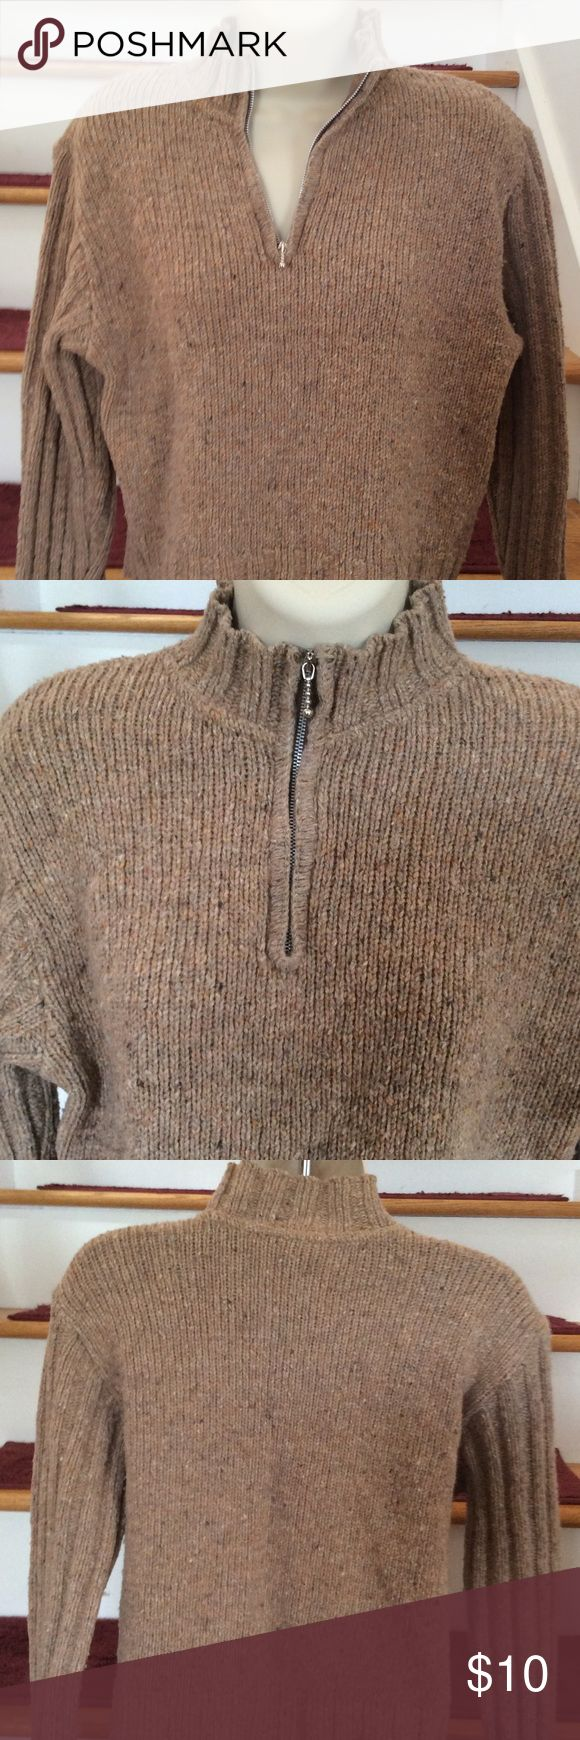 💕Cute and Warm Comfy Women's sweater, Size S Super cute preloved sweater with zip at neck. 80% Wool/20% Acrylic with natural variations in thread color/texture. Well made sweater in Italy that still has life to give, Size S Wit Boy Italy Sweaters